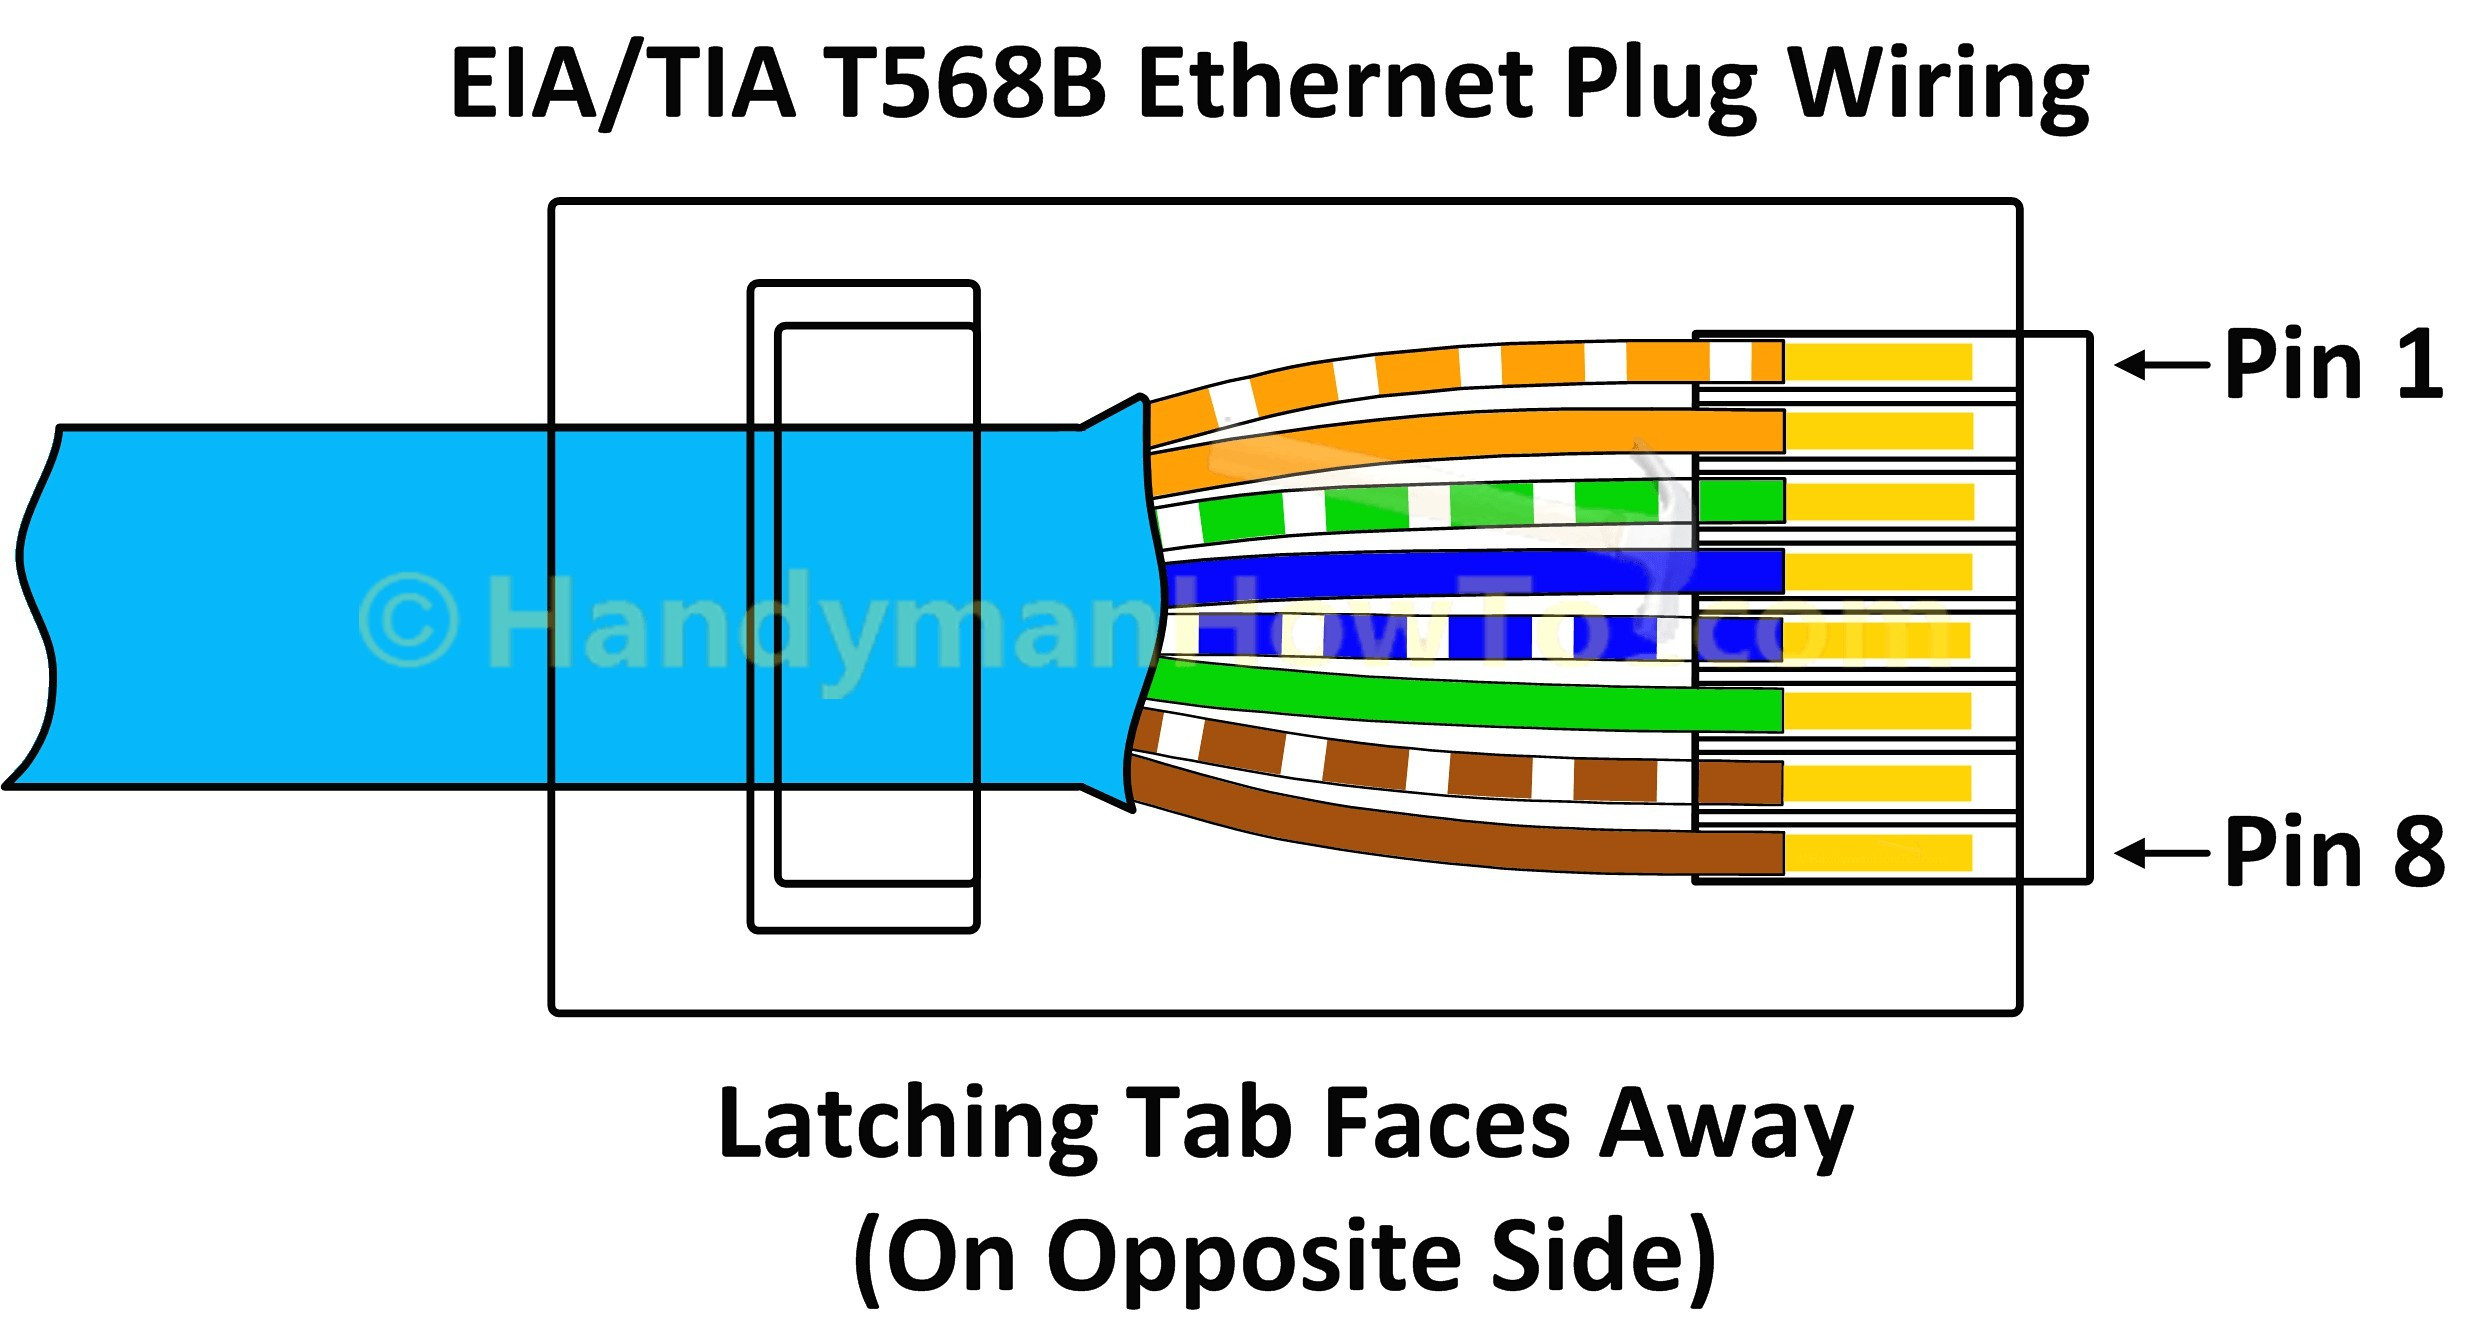 Cat5e Crossover Cable Wiring Diagram Gallery | Wiring ... on